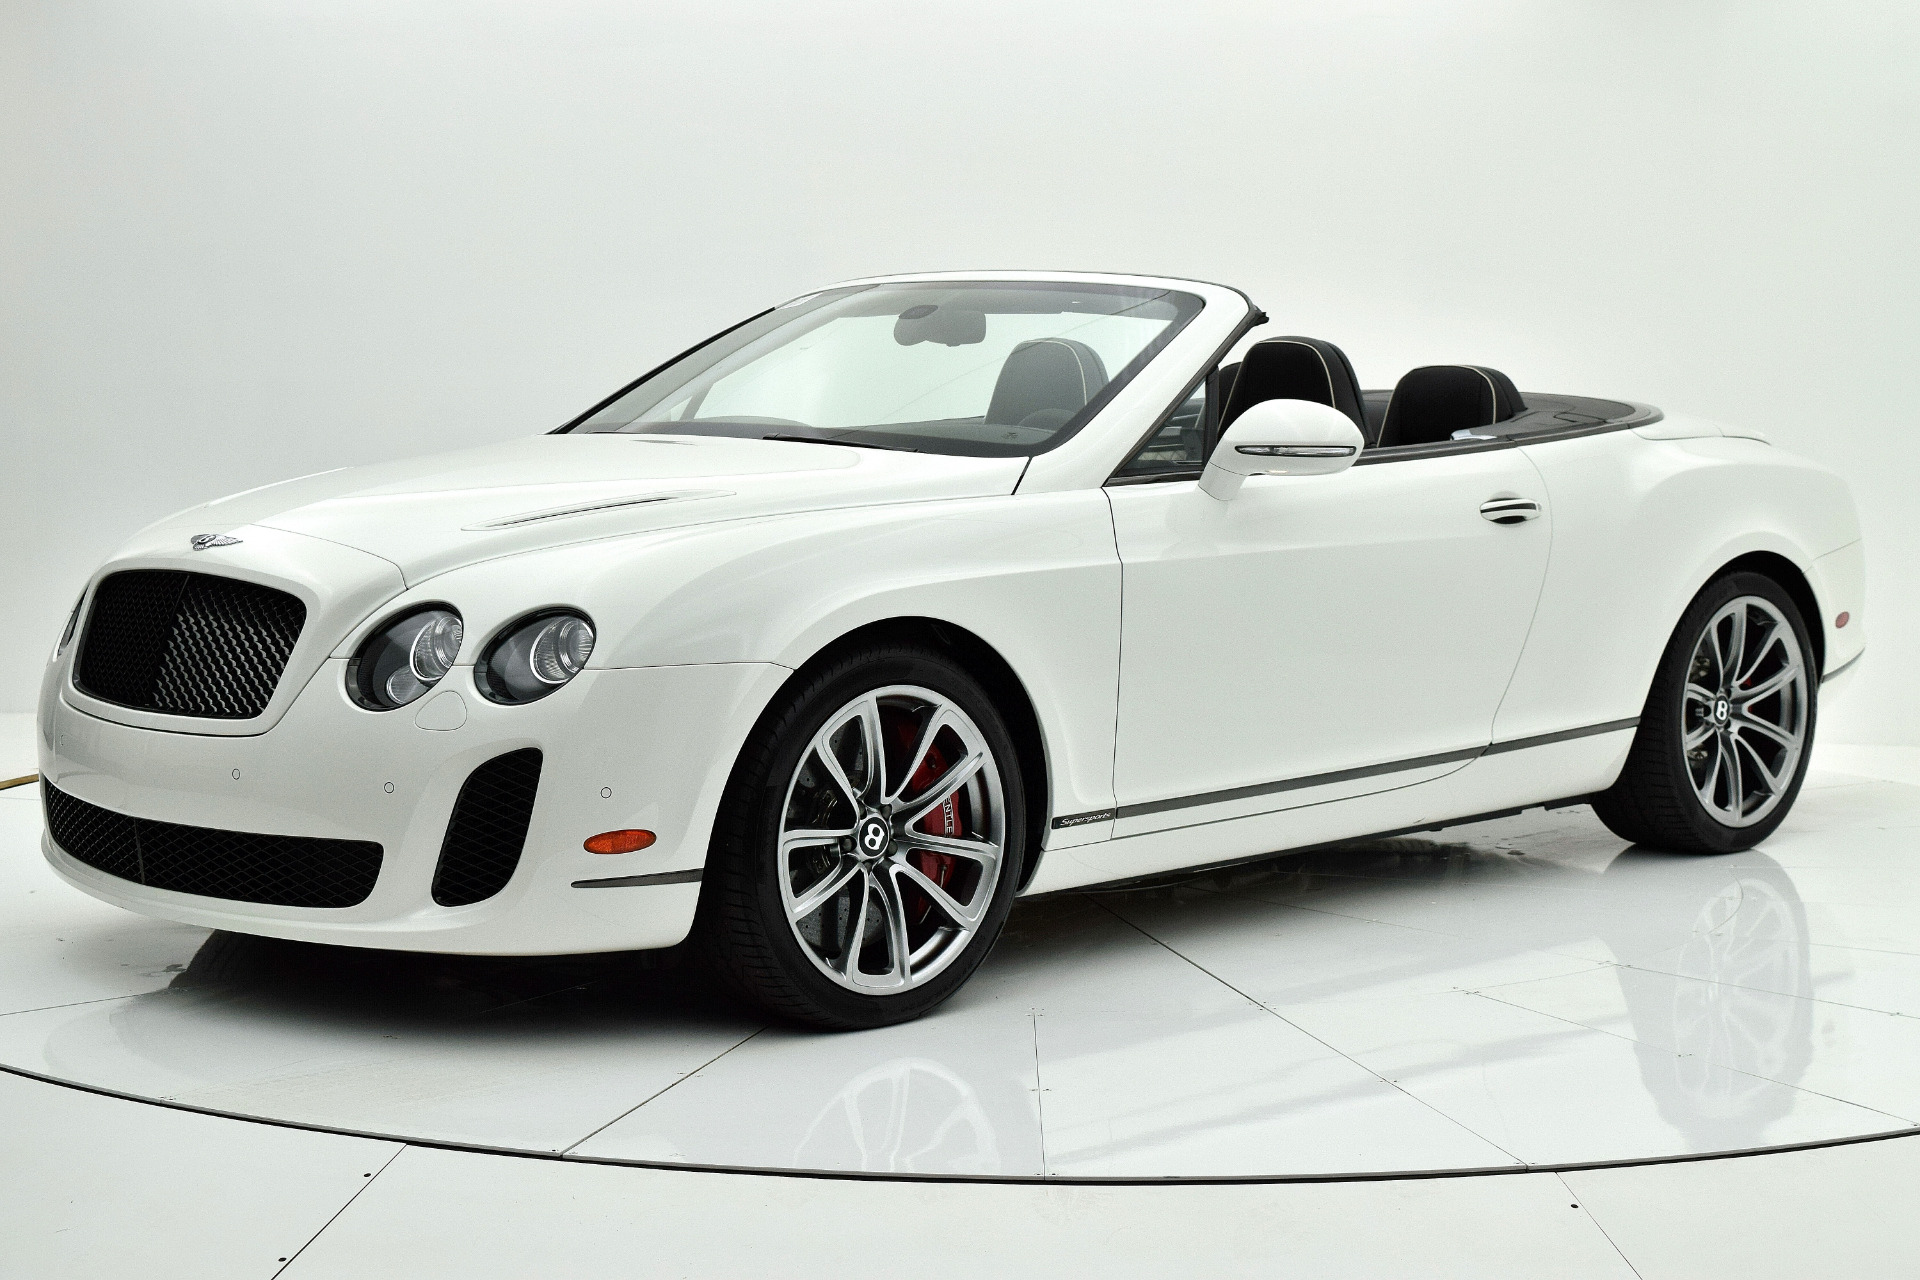 Used 2012 Bentley Continental Supersports Convertible for sale $107,880 at F.C. Kerbeck Aston Martin in Palmyra NJ 08065 2